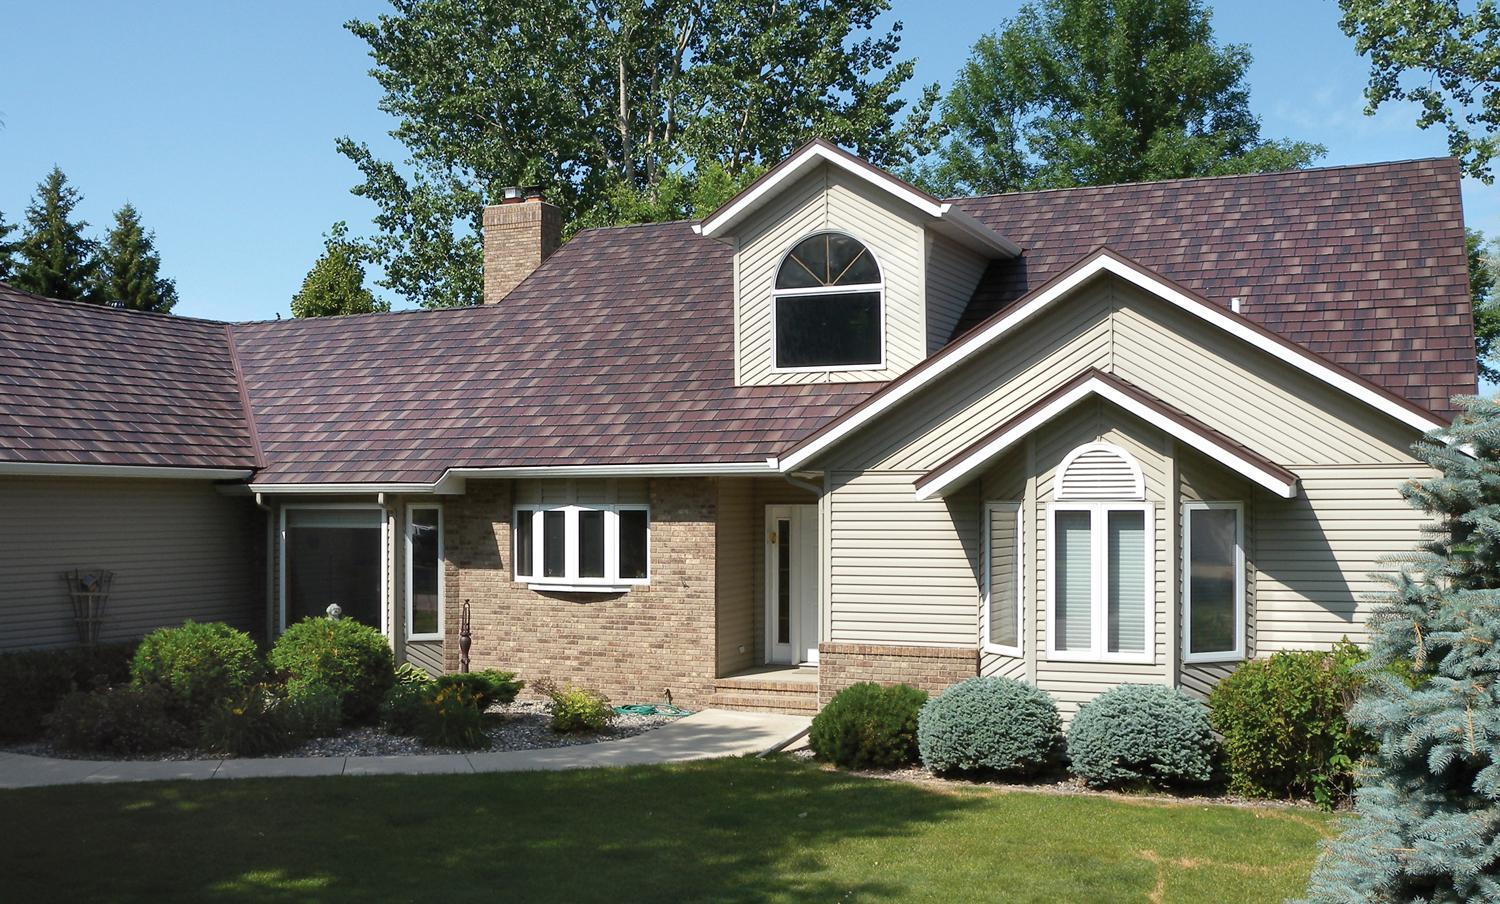 EDCO's Arrowline Shake Royal Brown Blend Roofing offers this rambler a distinctive look that coordinates with the brick and siding color on the home